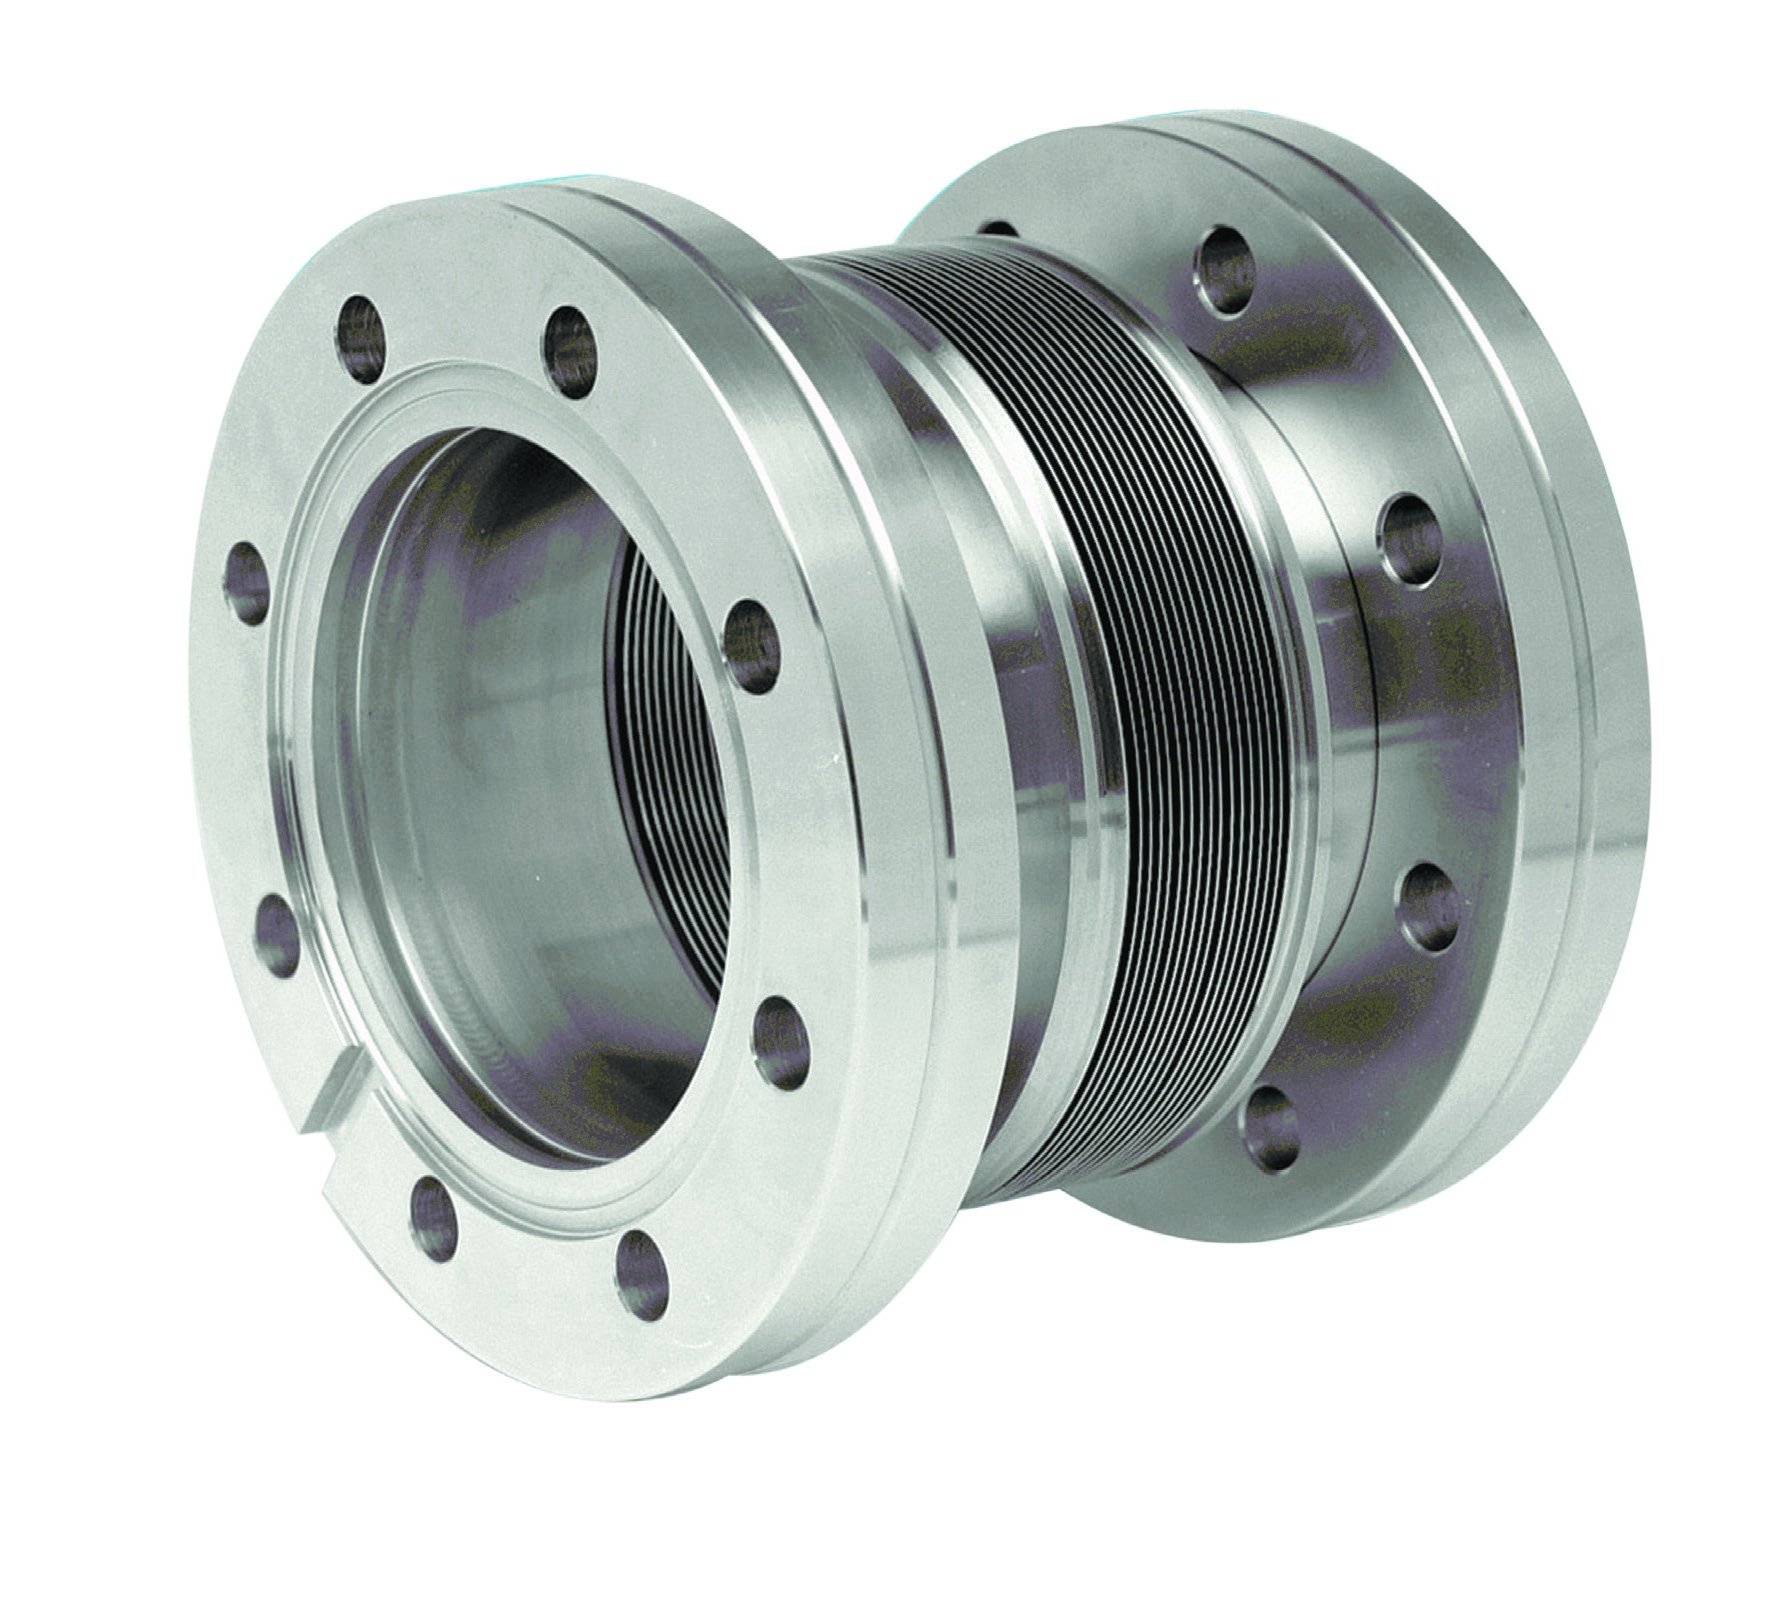 Edge welded bellow with DN150CF flanges, L = 98 - 173mm